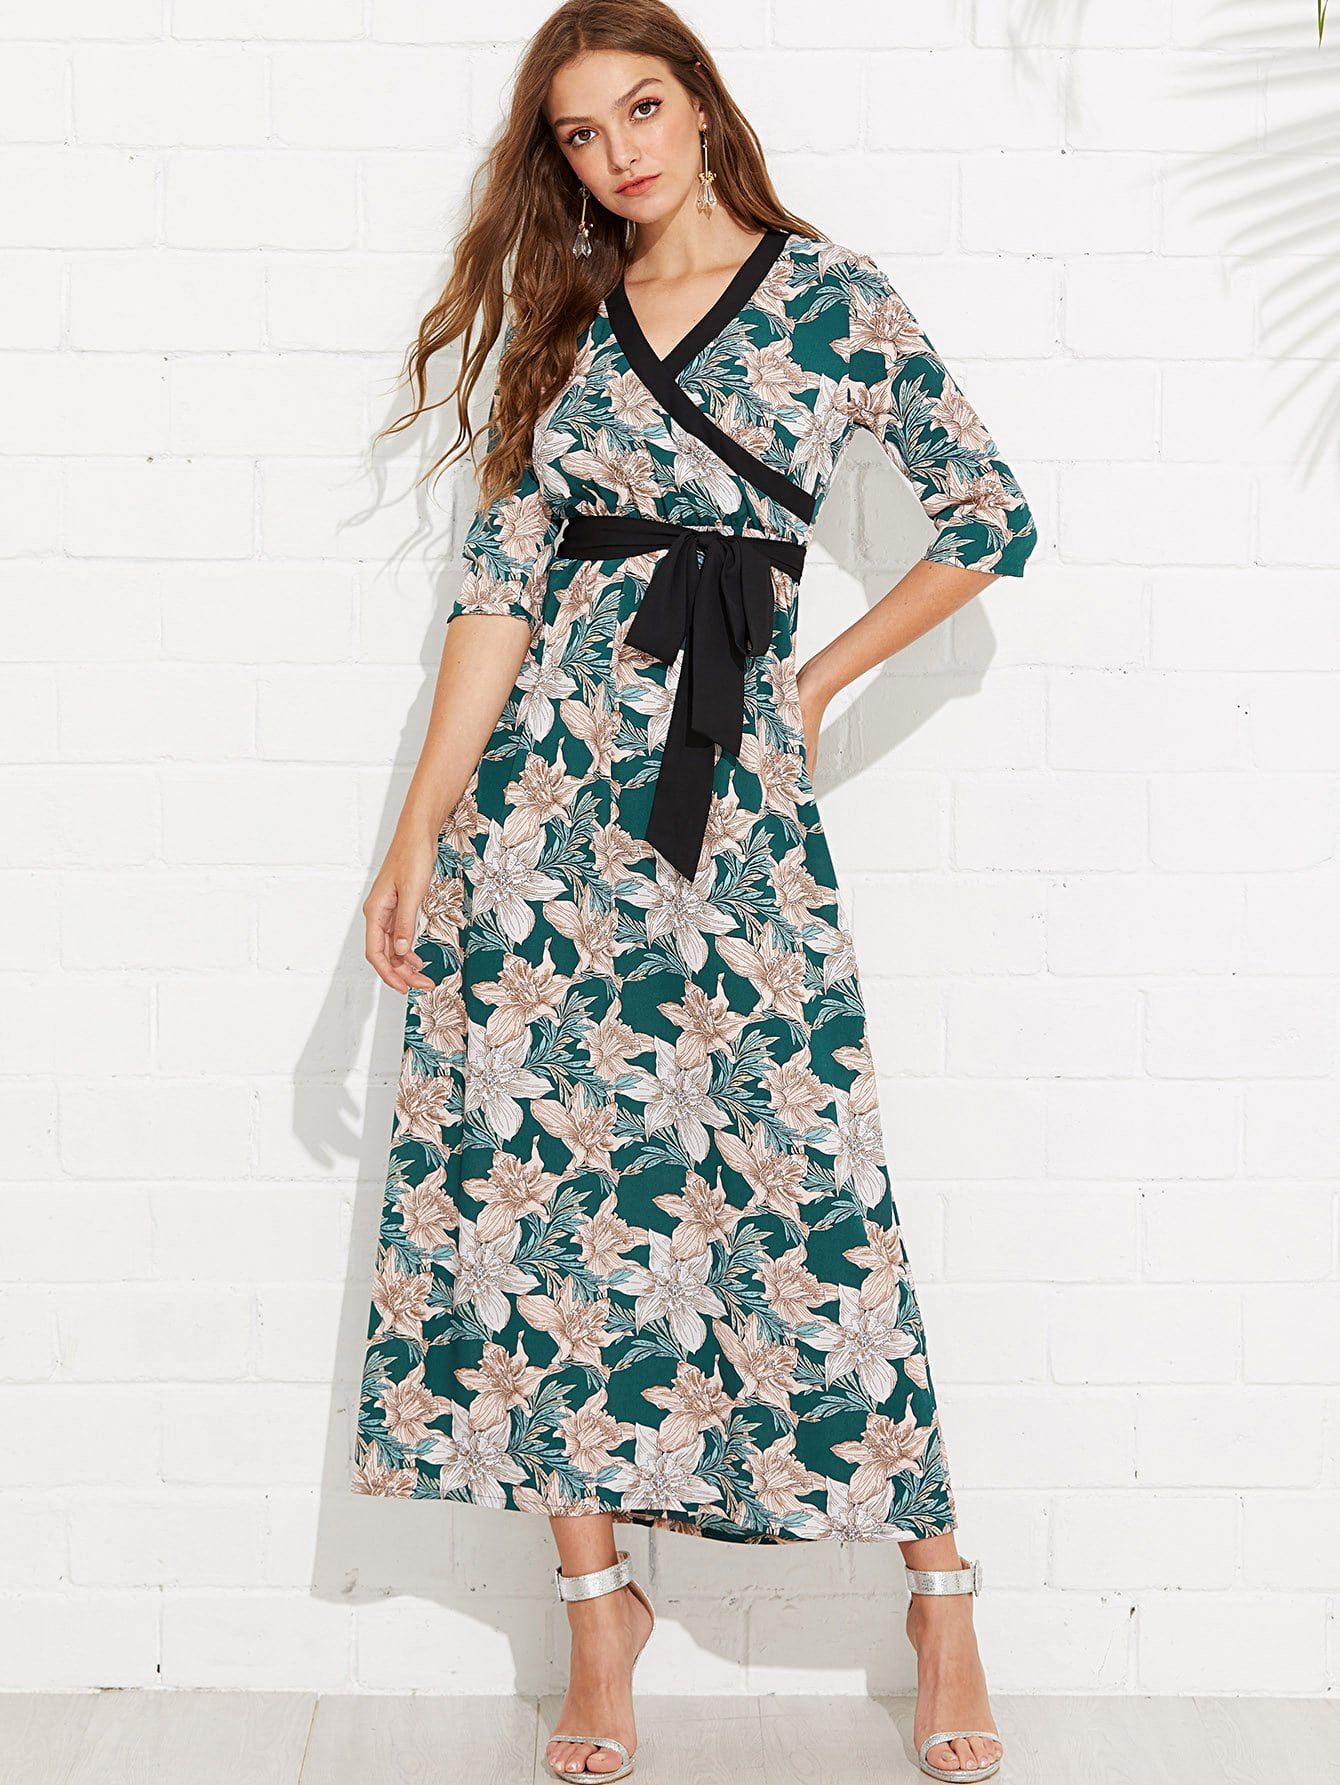 Contrast Binding Flower Print Wrap Dress contrast binding wrap dress